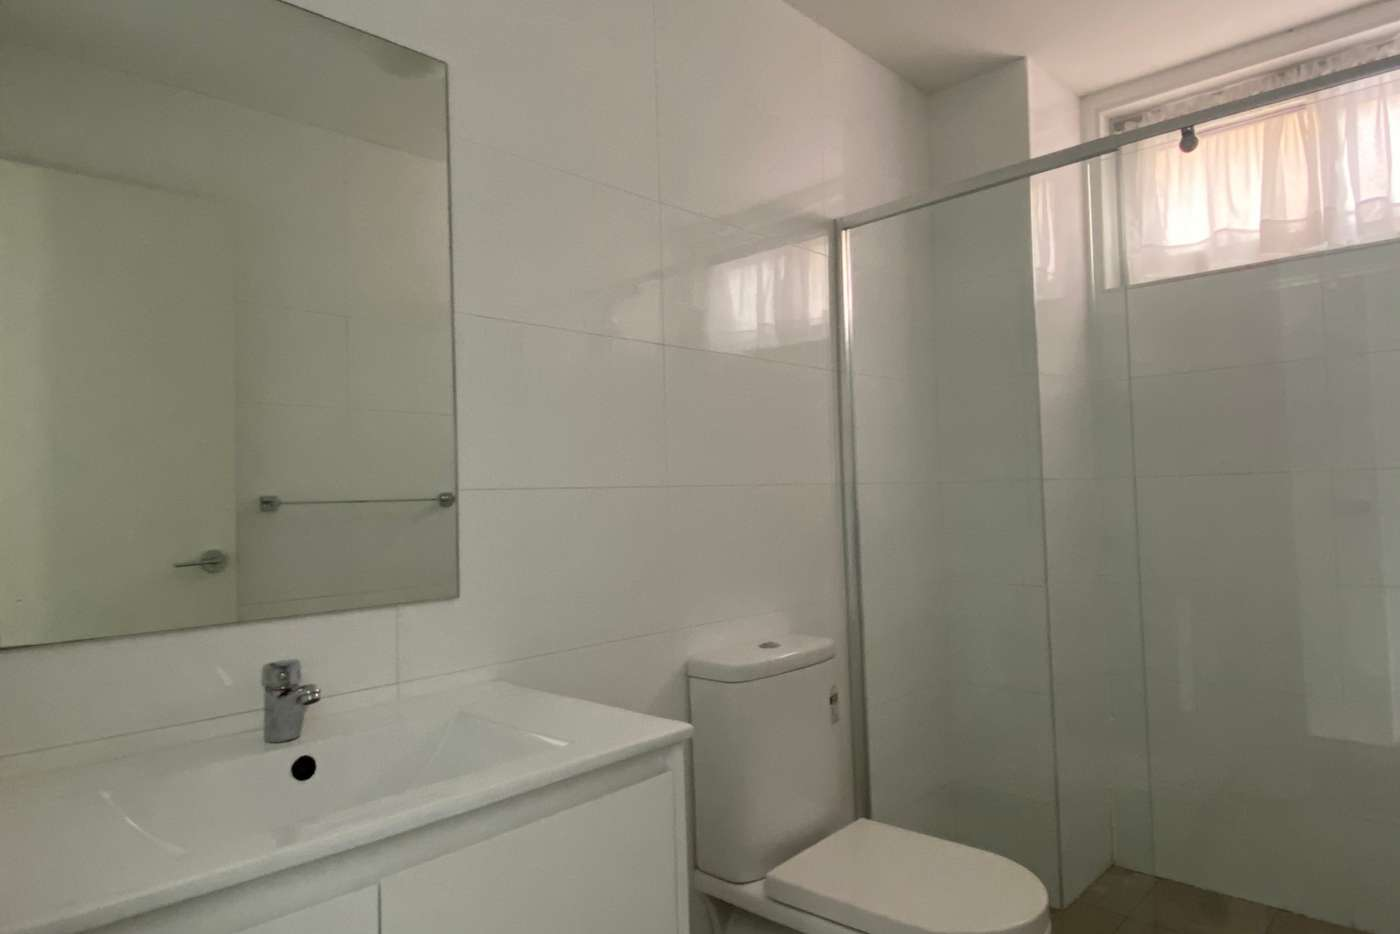 Sixth view of Homely apartment listing, 501/2A Lister Avenue, Rockdale NSW 2216